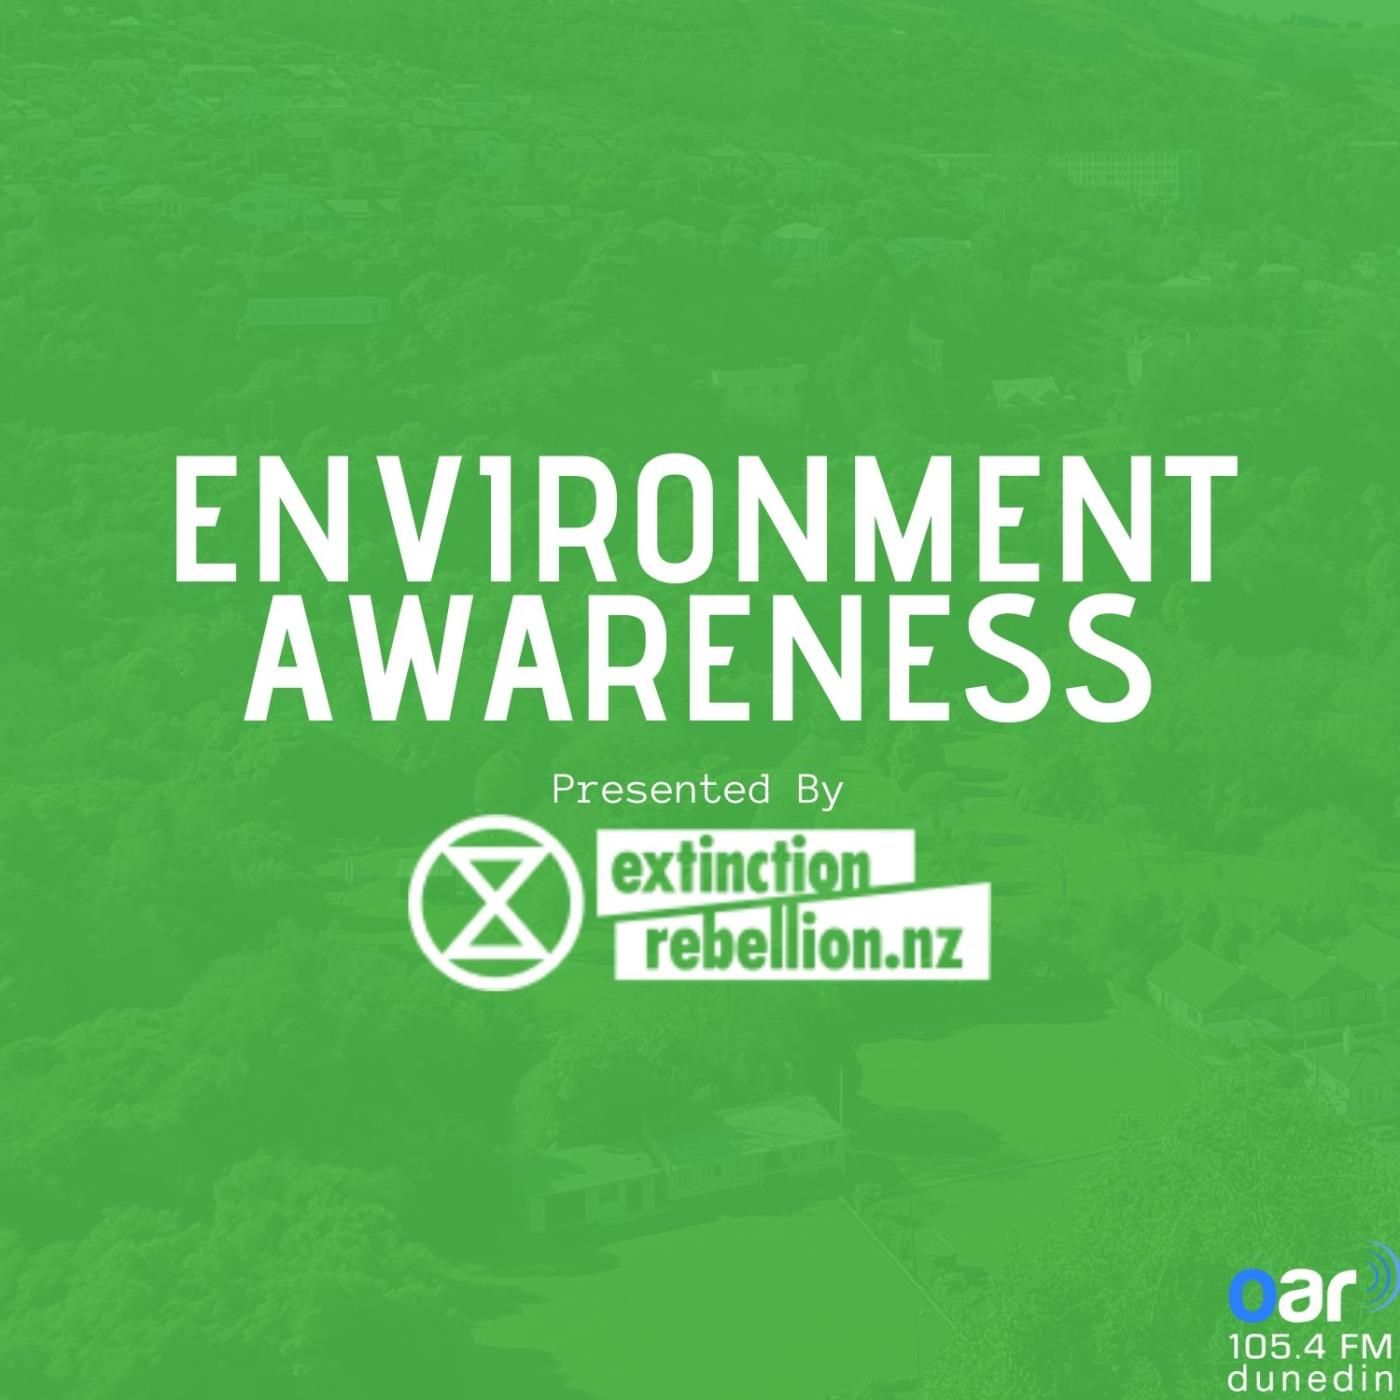 Environment Awareness - 27-04-2021 - Show 50 - De-colonisation and the Climate Movement